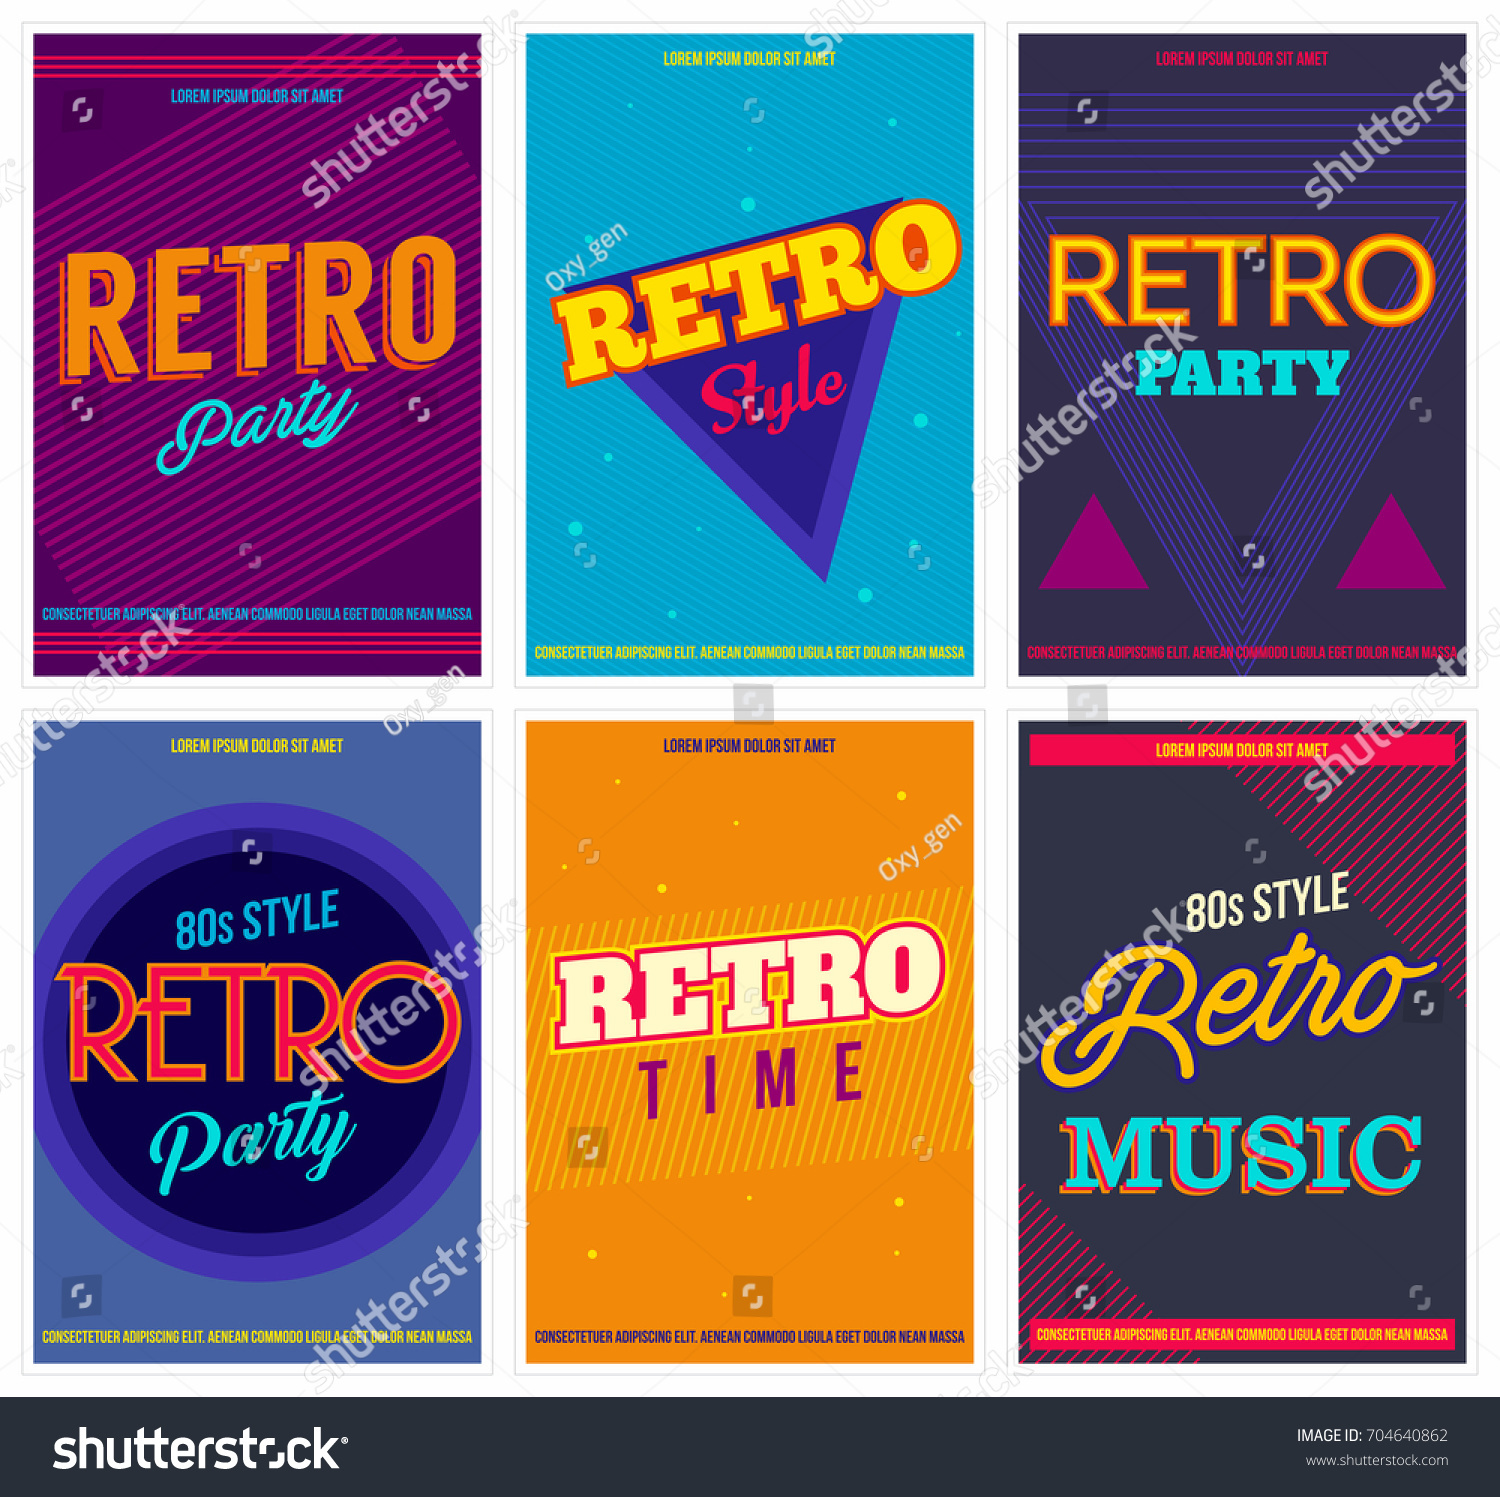 Retro Party Posters Set Vector Illustration Stock Vector 704640862 ...